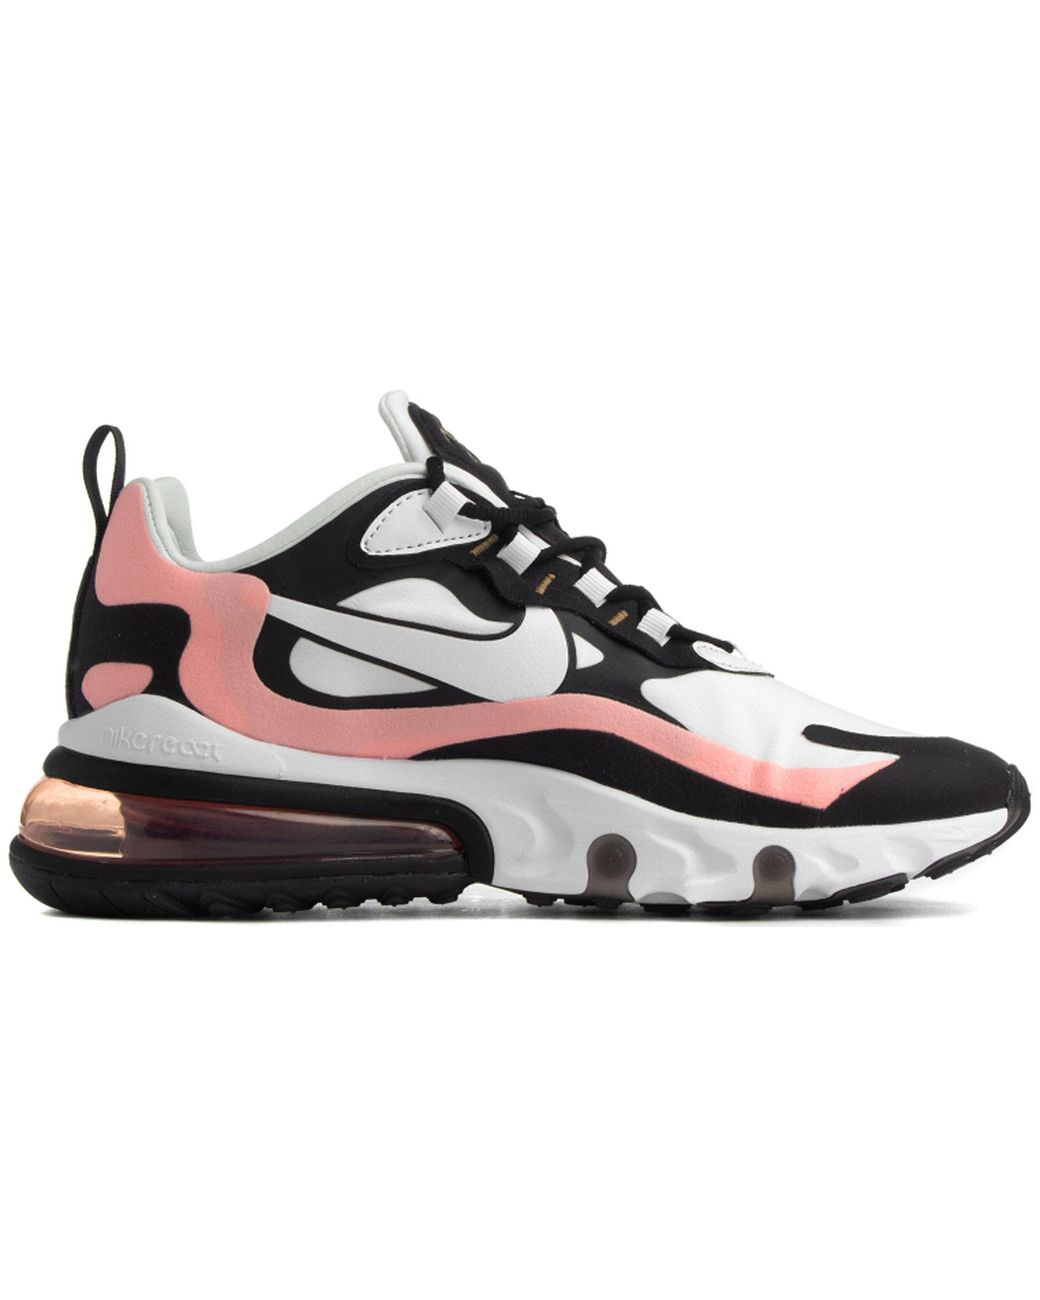 air max 270 react rose pale